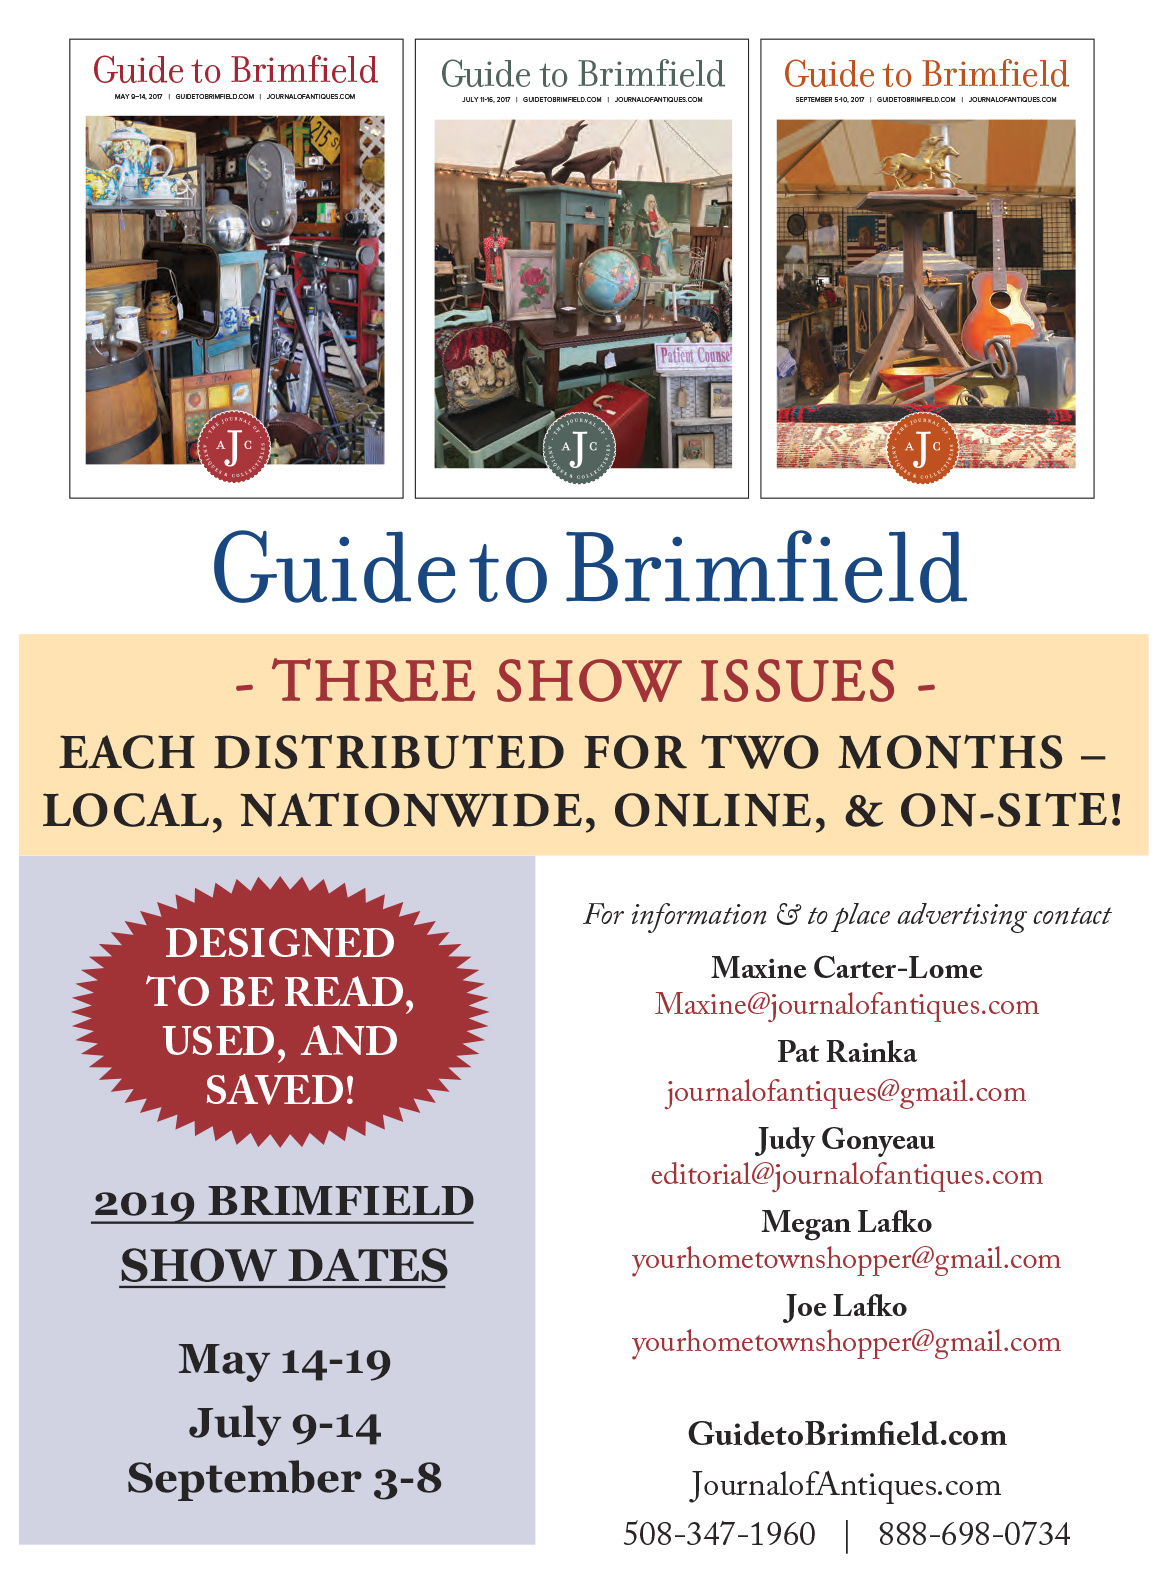 Guide To Brimfield - Advertise